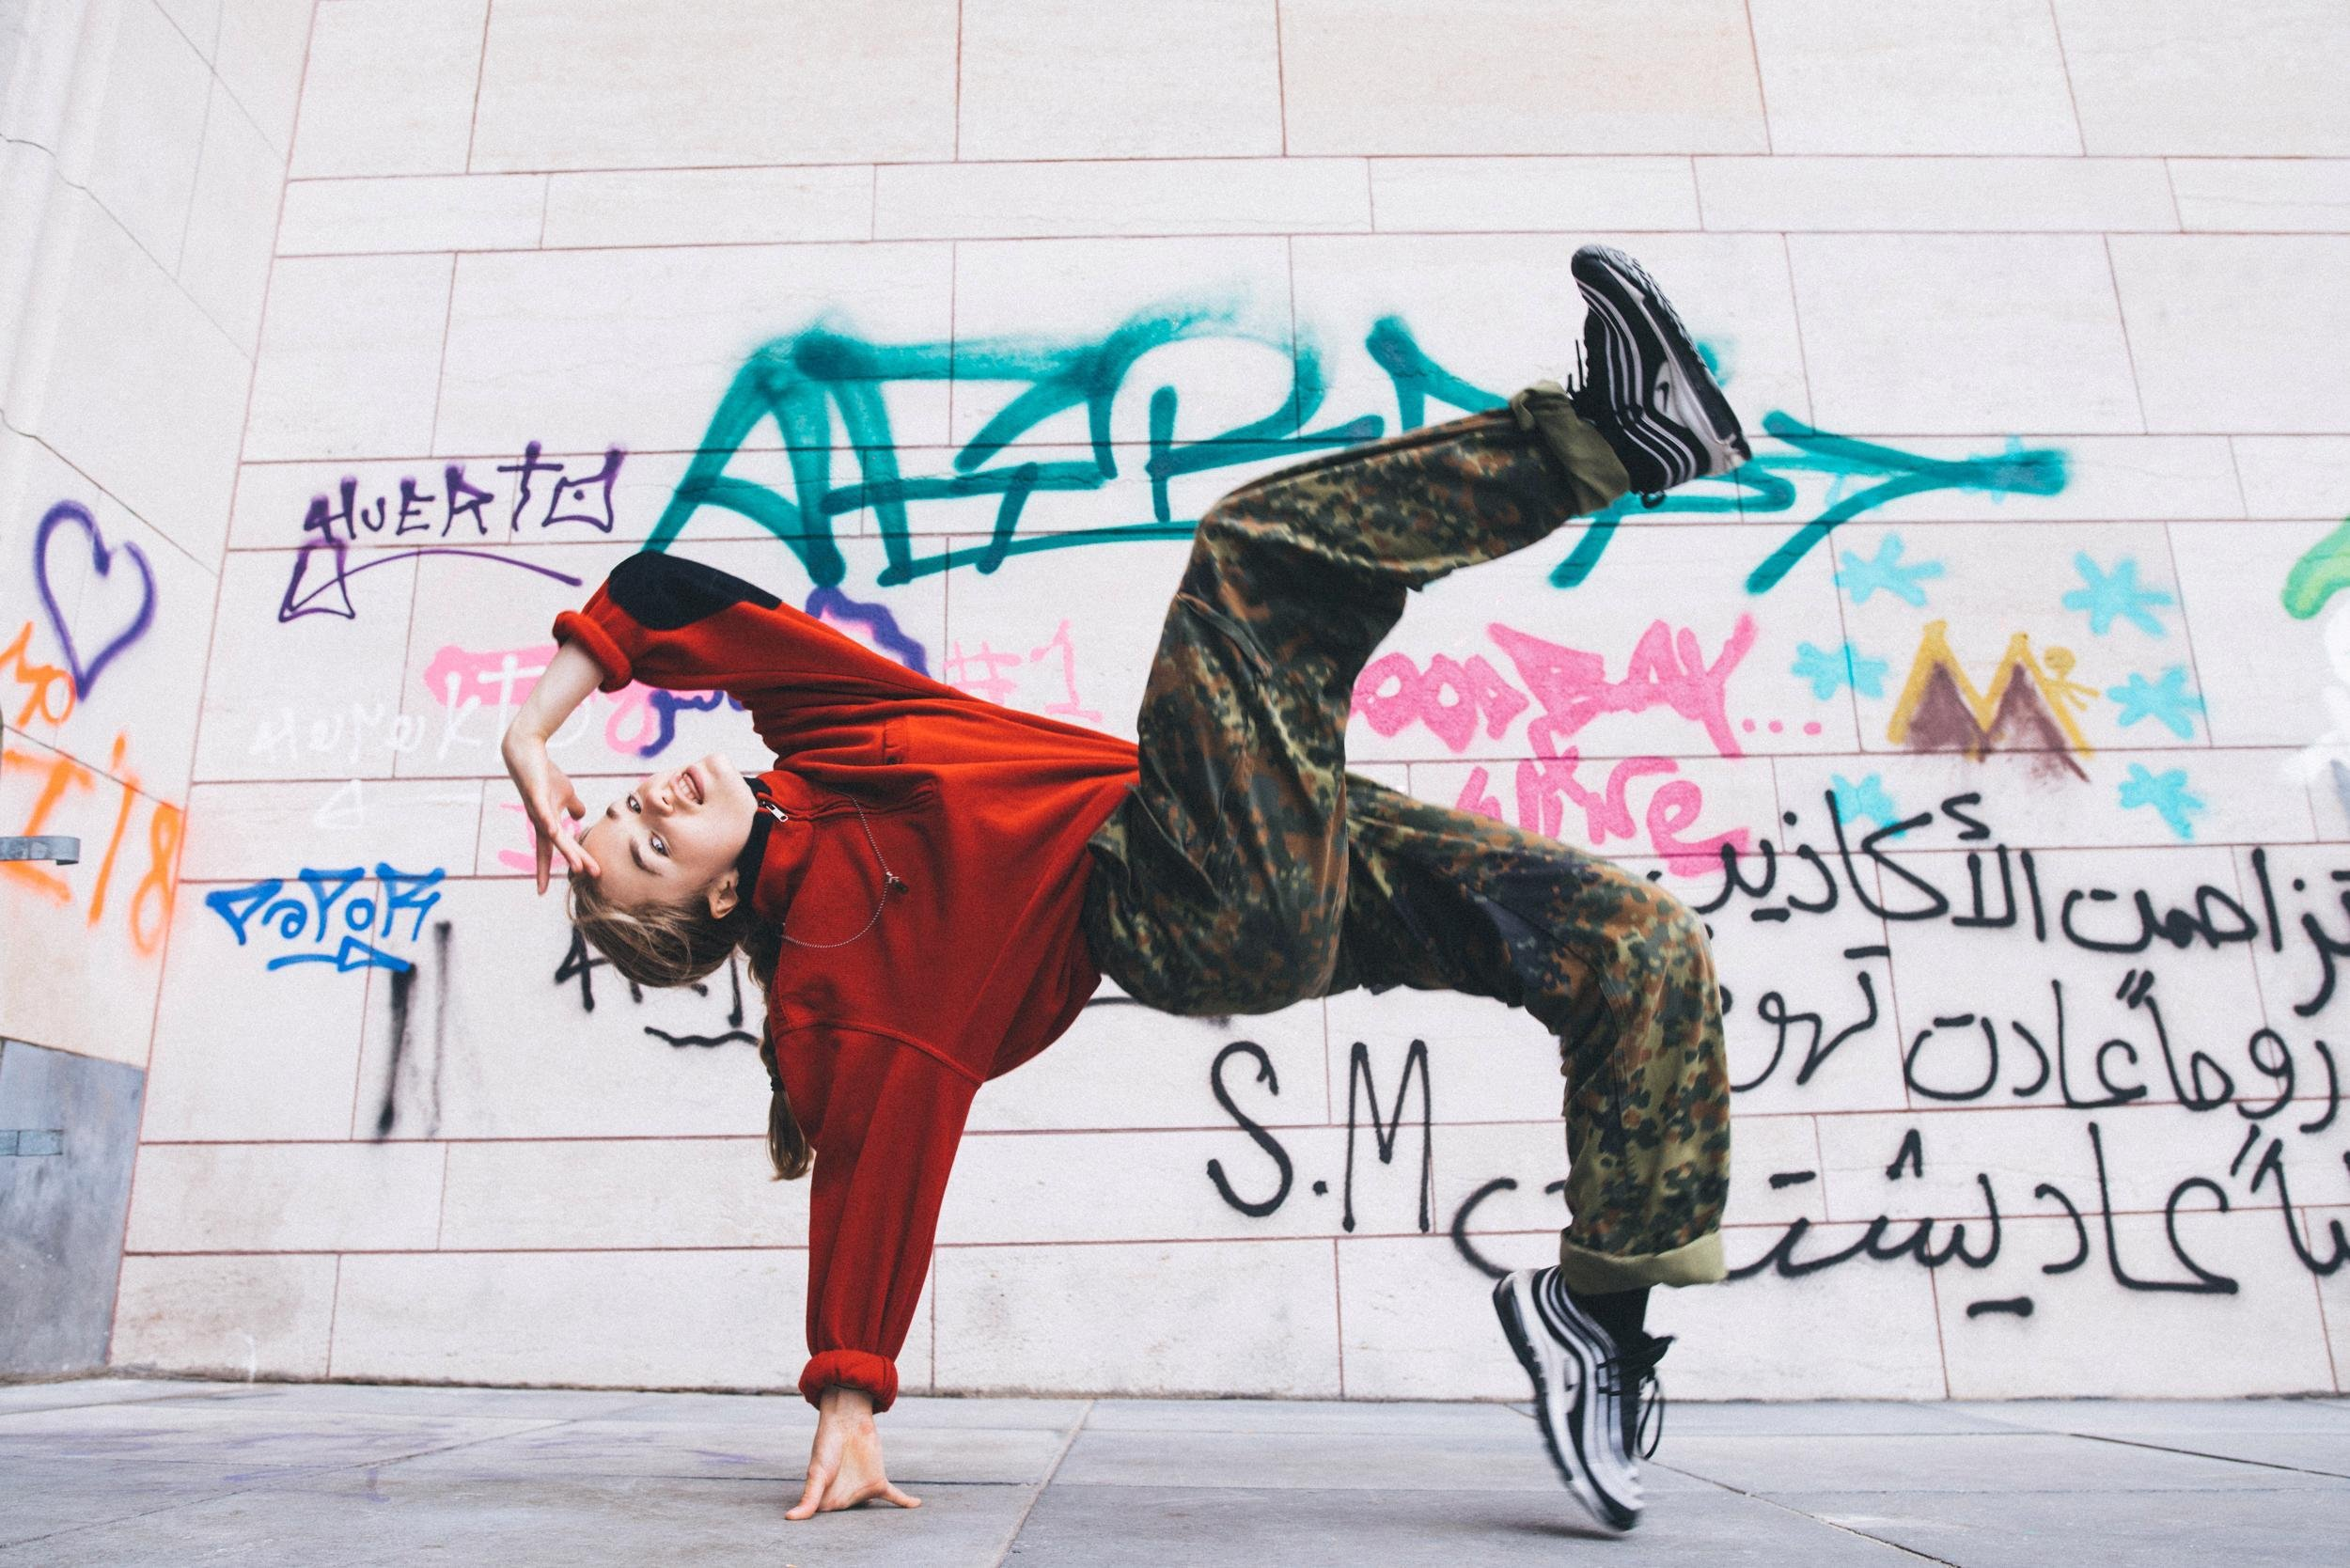 Mad Max reveals her secrets – interview with bgirl Maxime about getting to the top